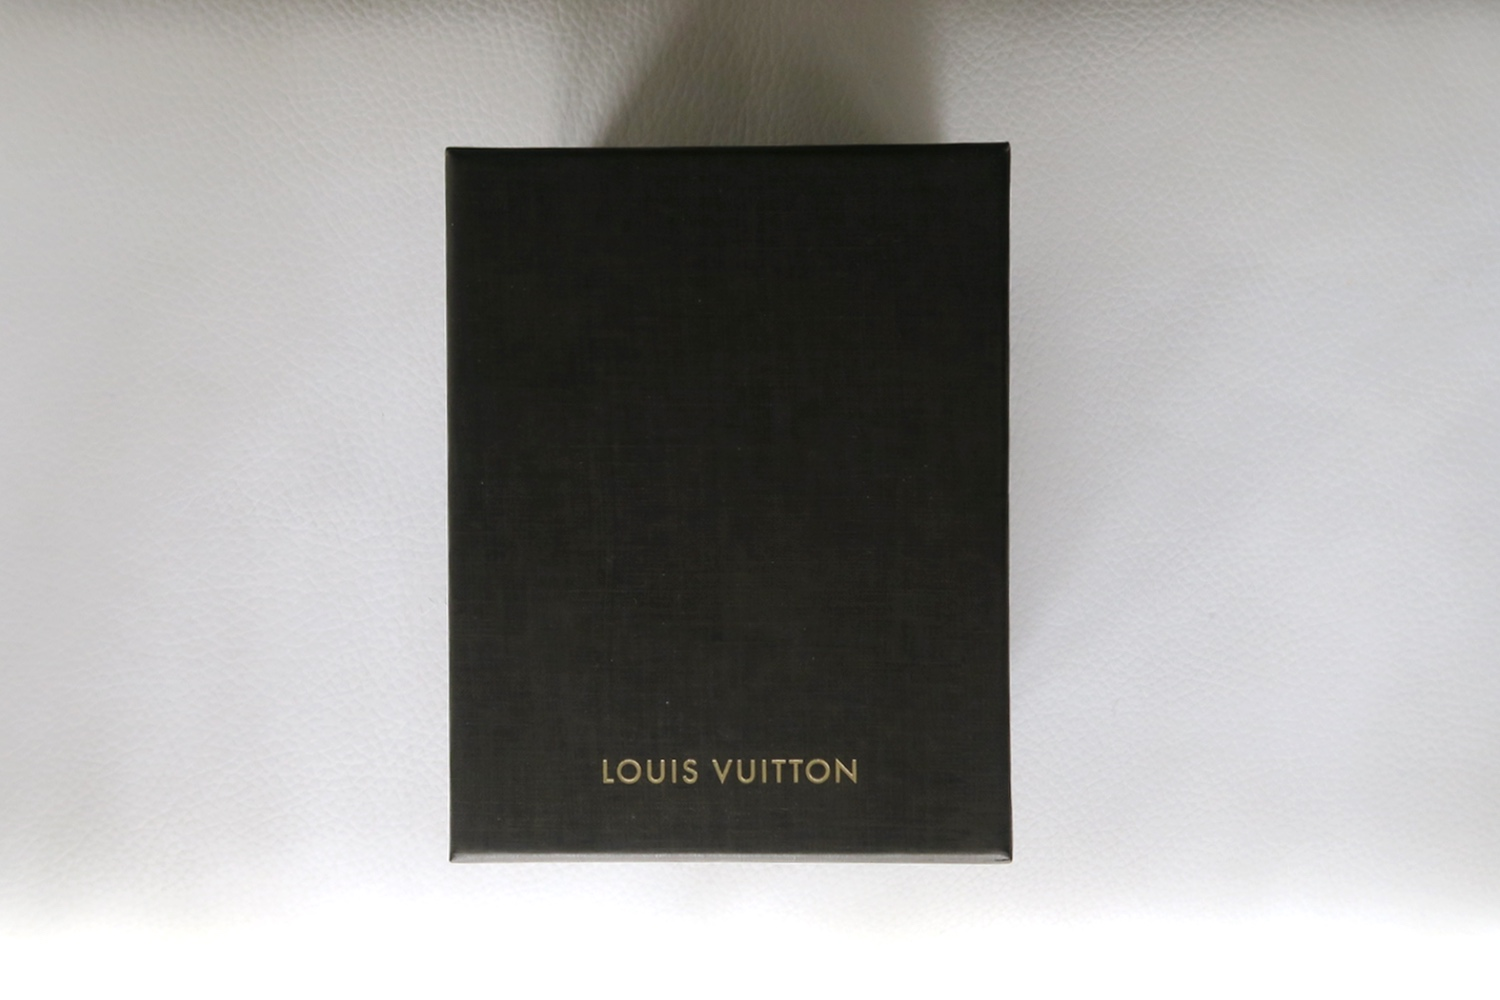 louis-vuitton-emprise-23-timepiece-watch-character-32-c32-box